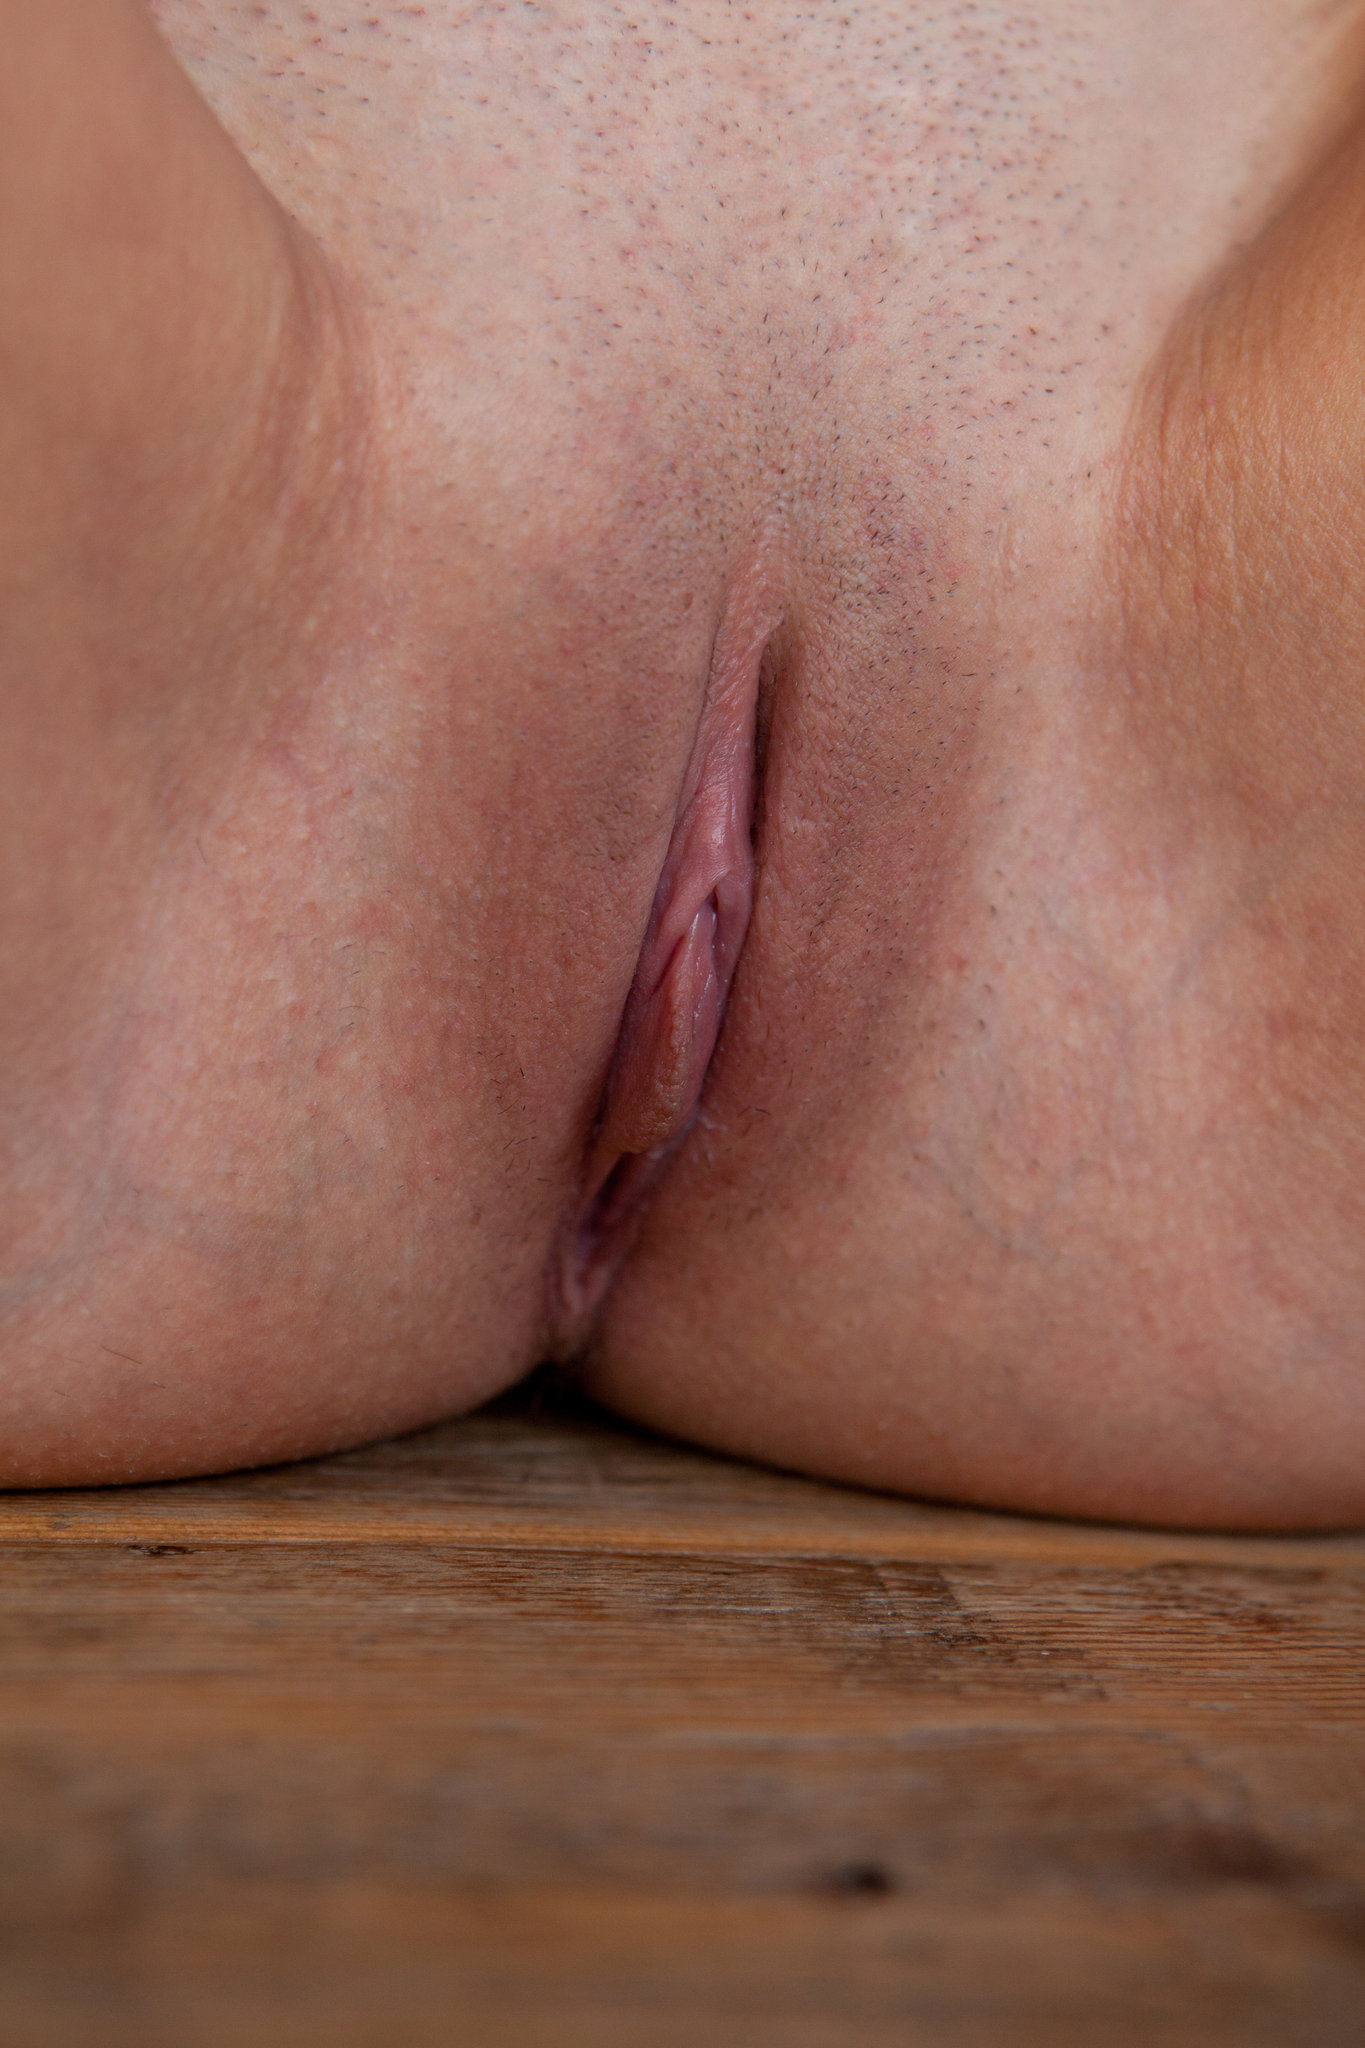 Women pussy up close